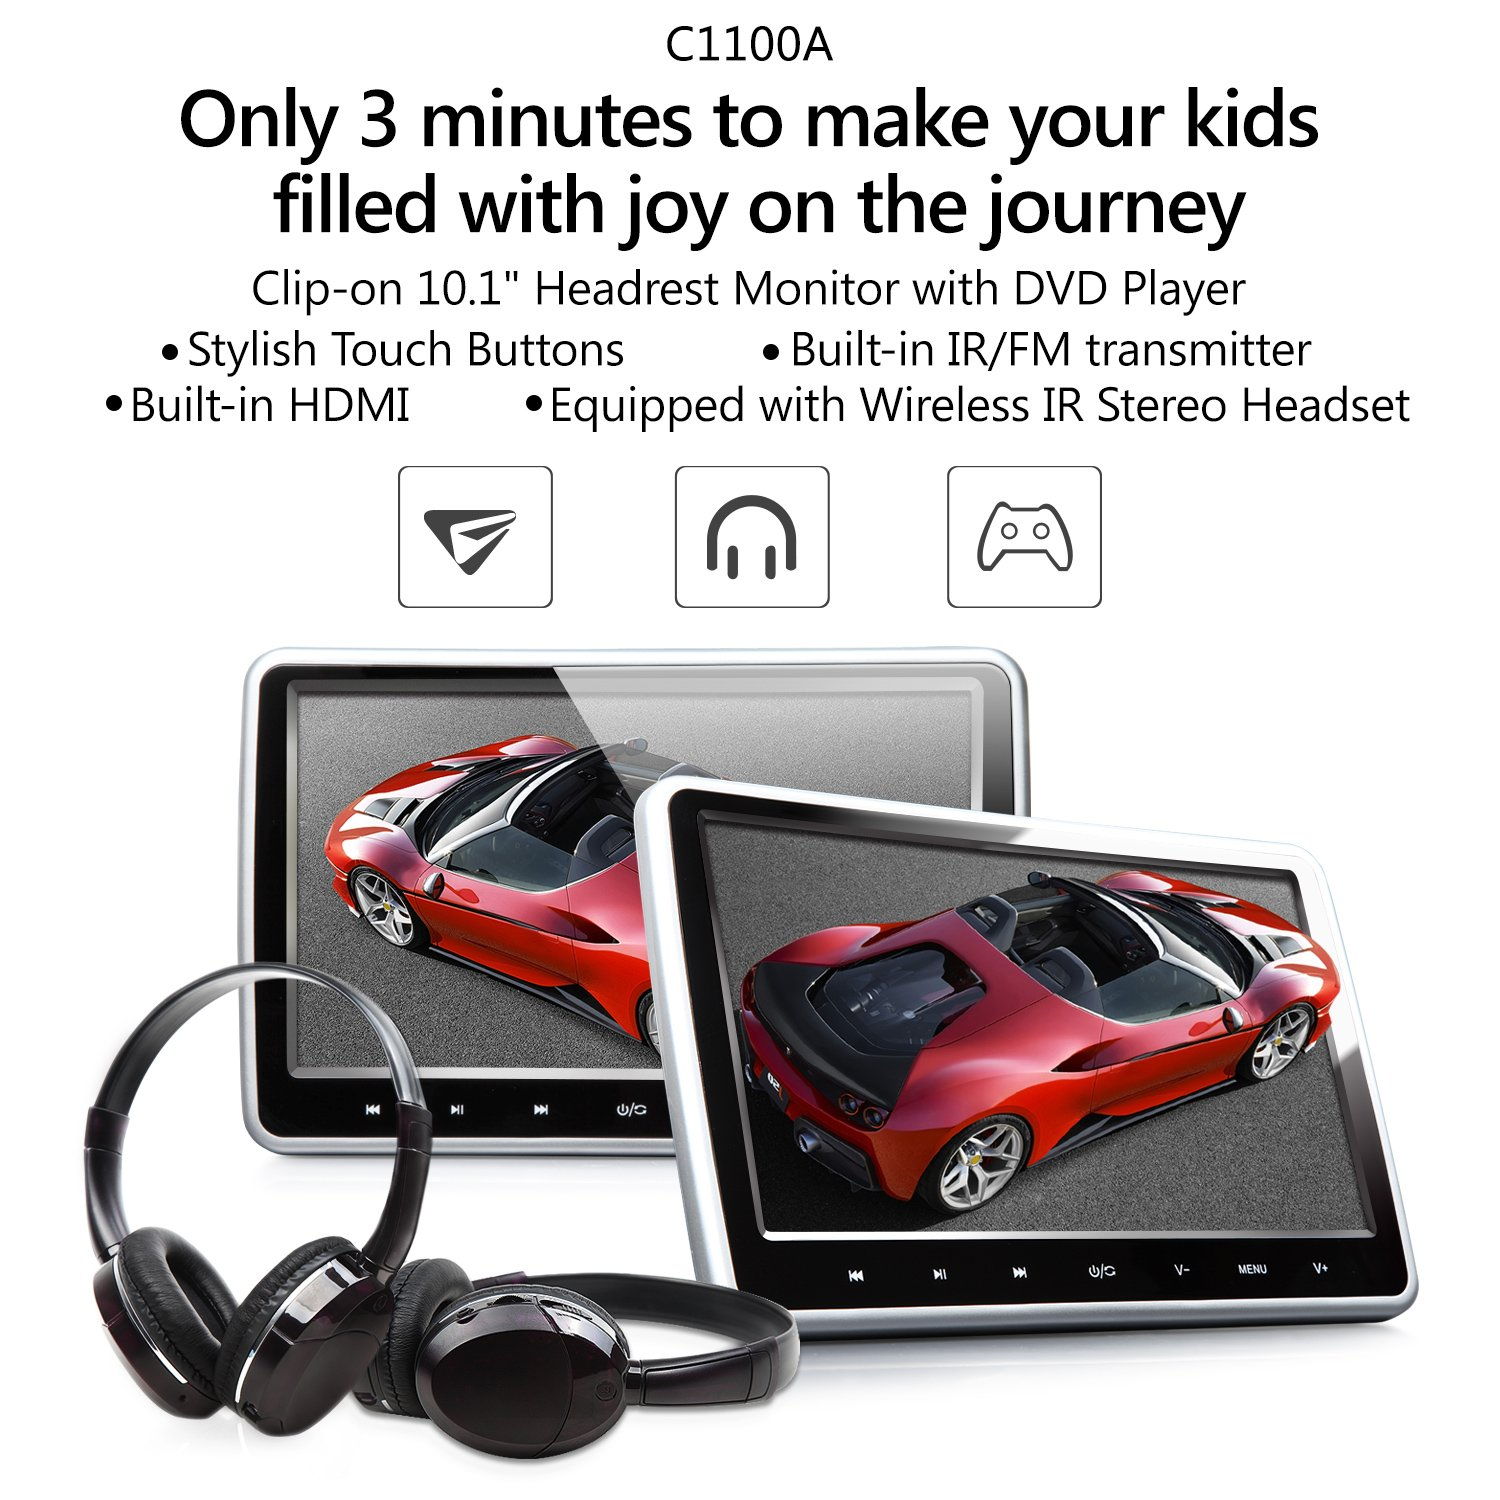 Eonon C1100A Black 10.1 Inch Clip-on Digital Screen Headrest Monitor with DVD Player One Pair by Eonon (Image #2)